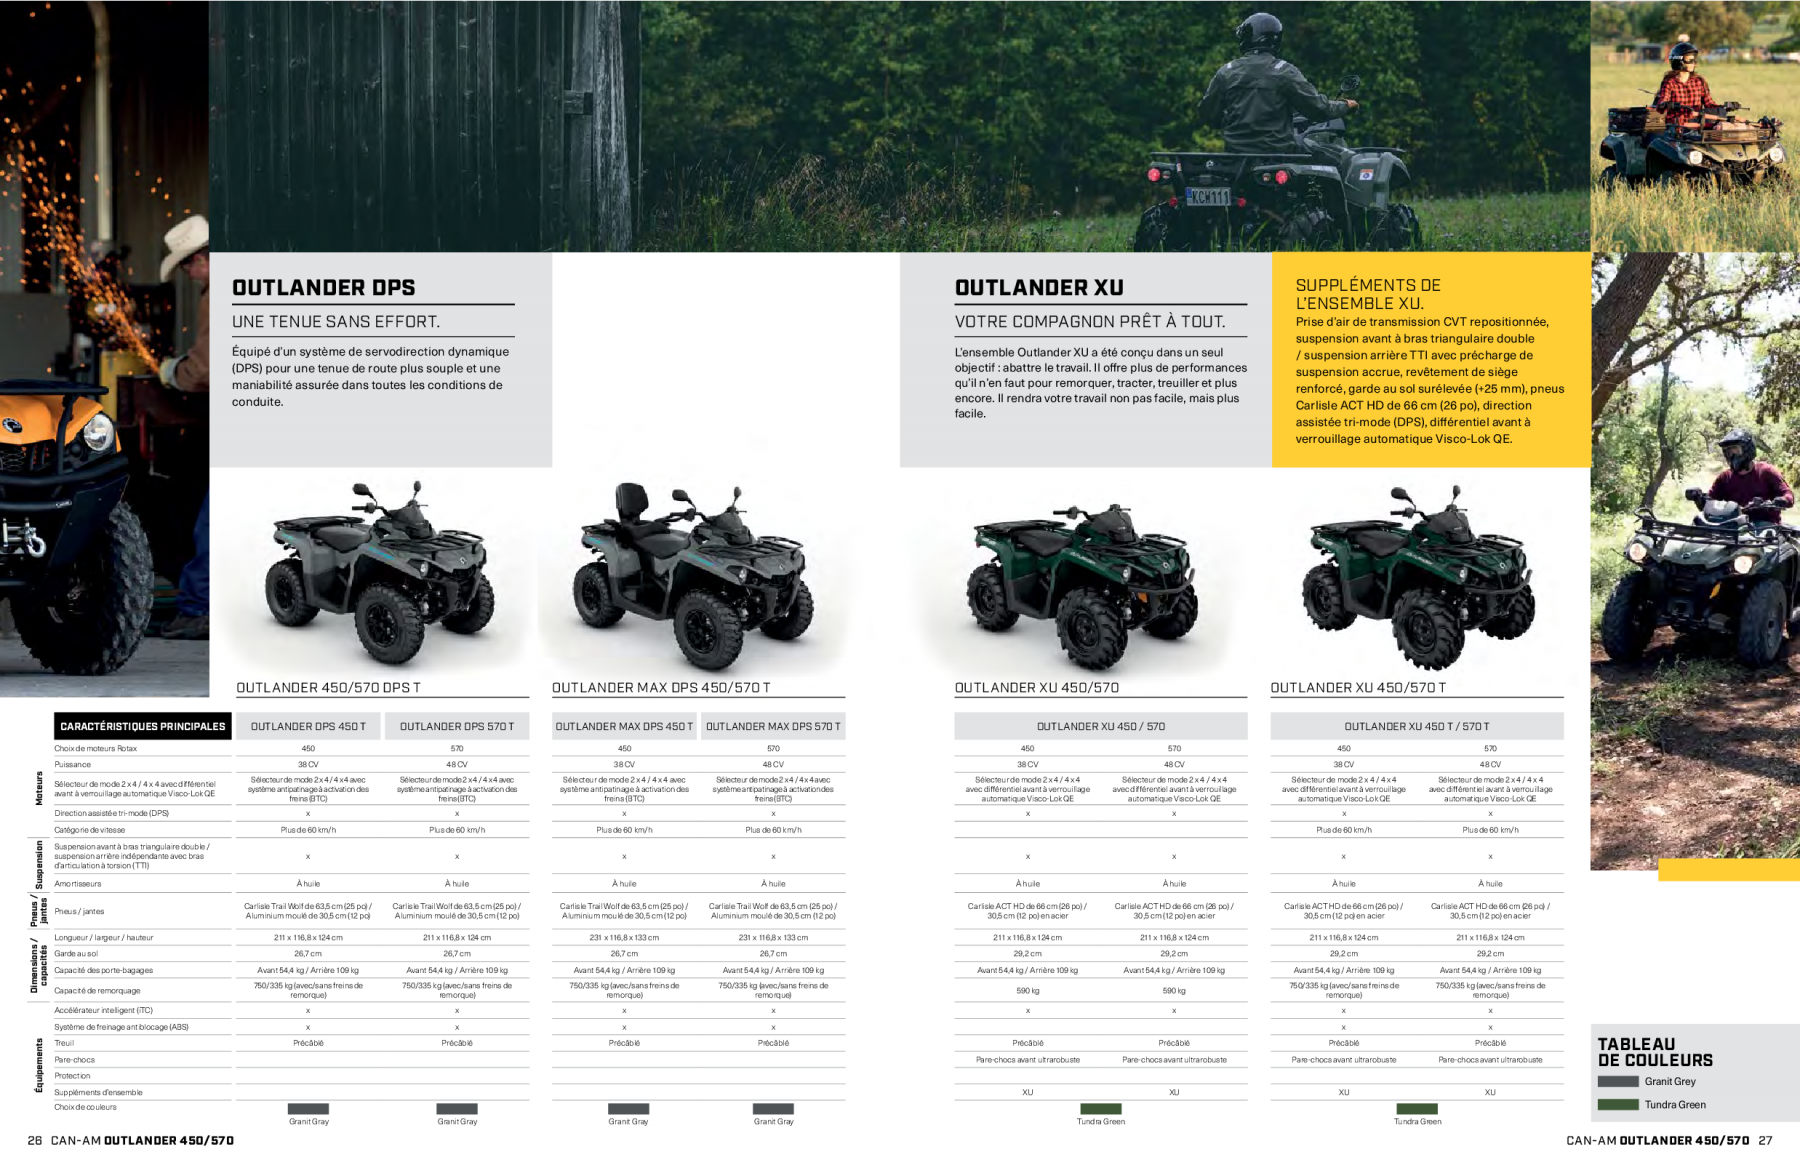 CAN-AM-Brochures-vehicules-gamme-2021-quad-ssv-_Motricity15